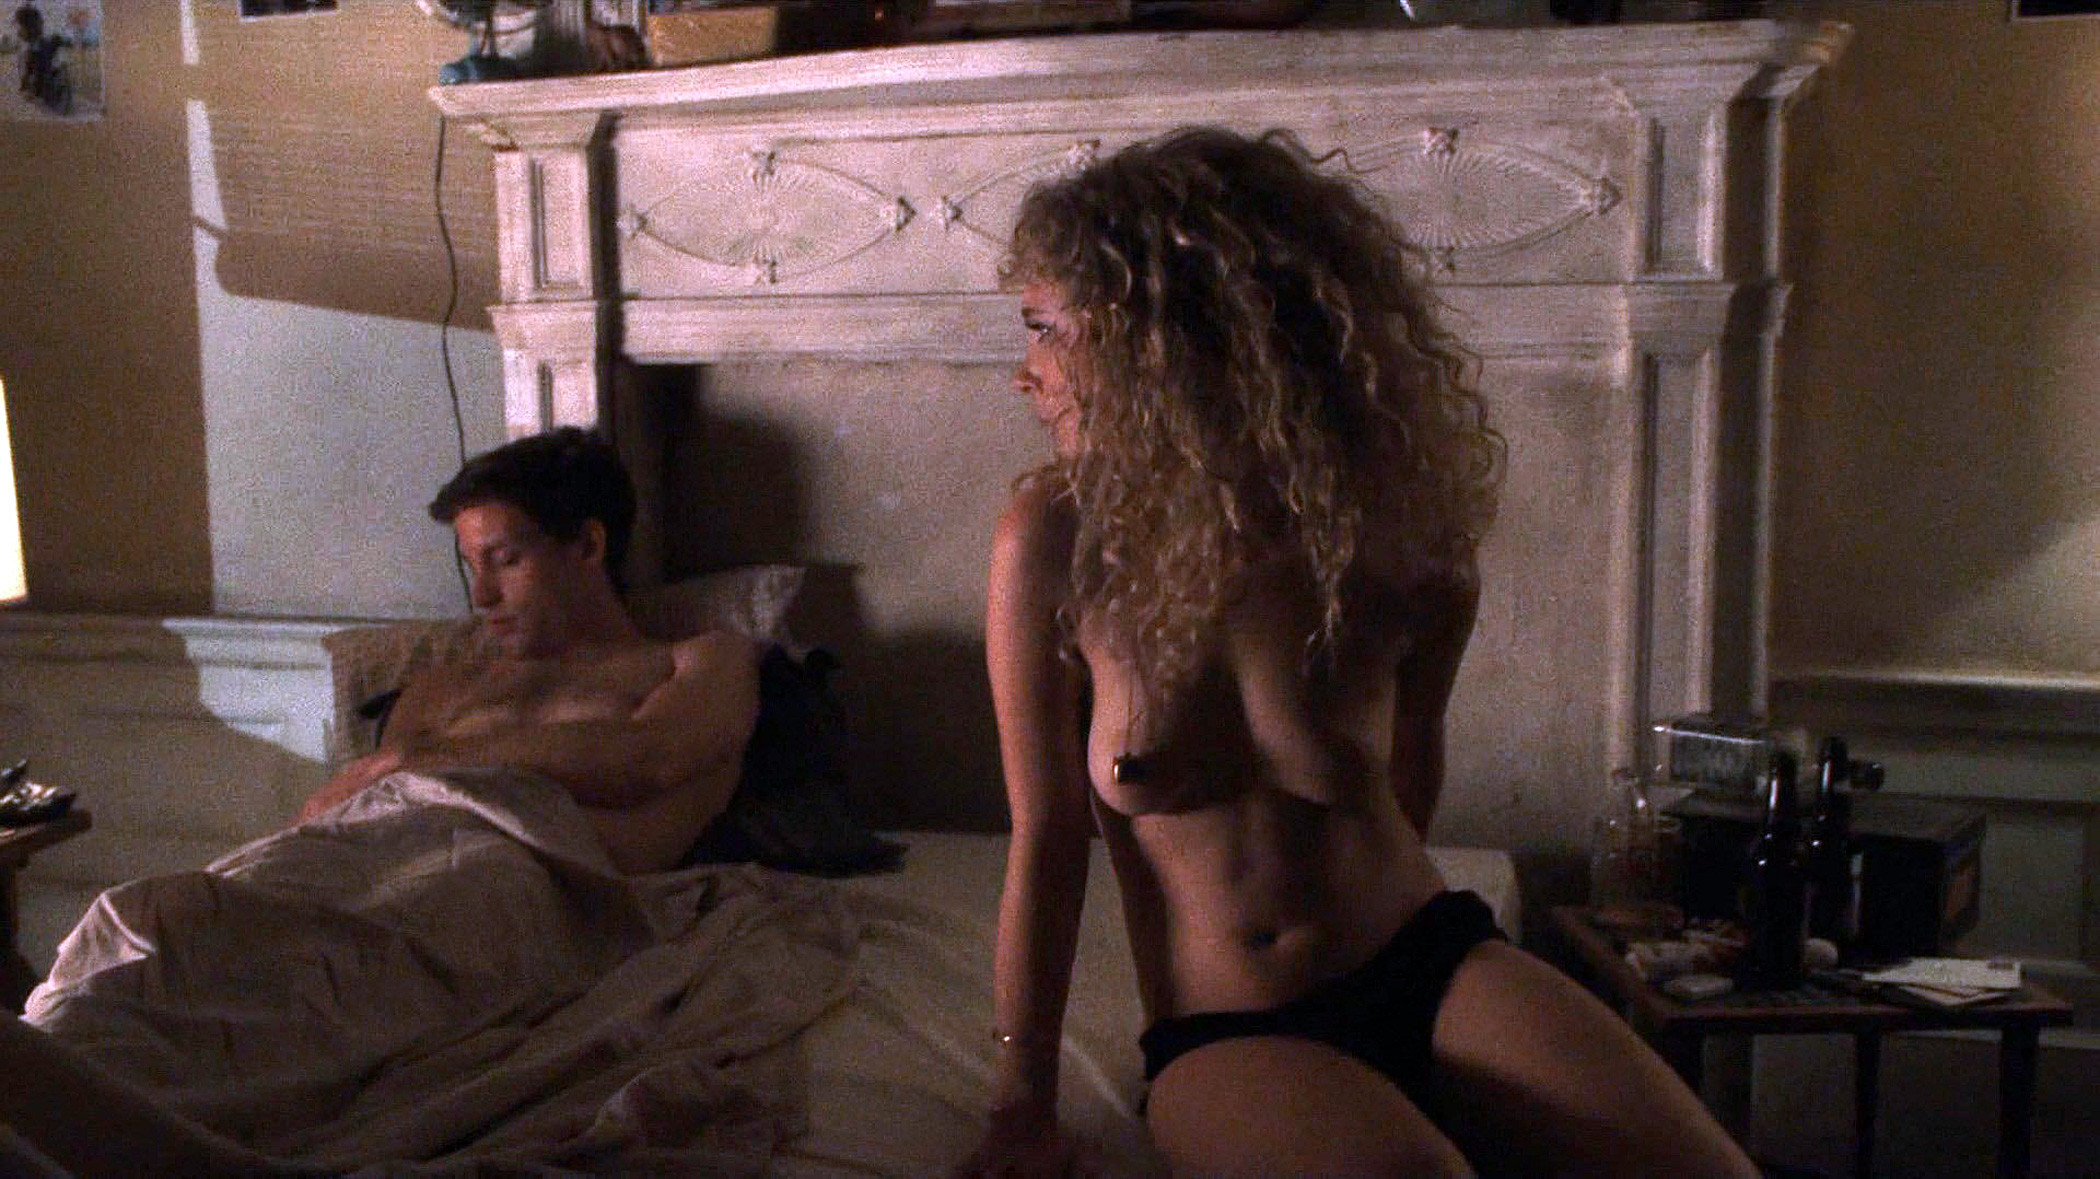 image Juno temple threesome sex scene in vinyl scandalplanetcom